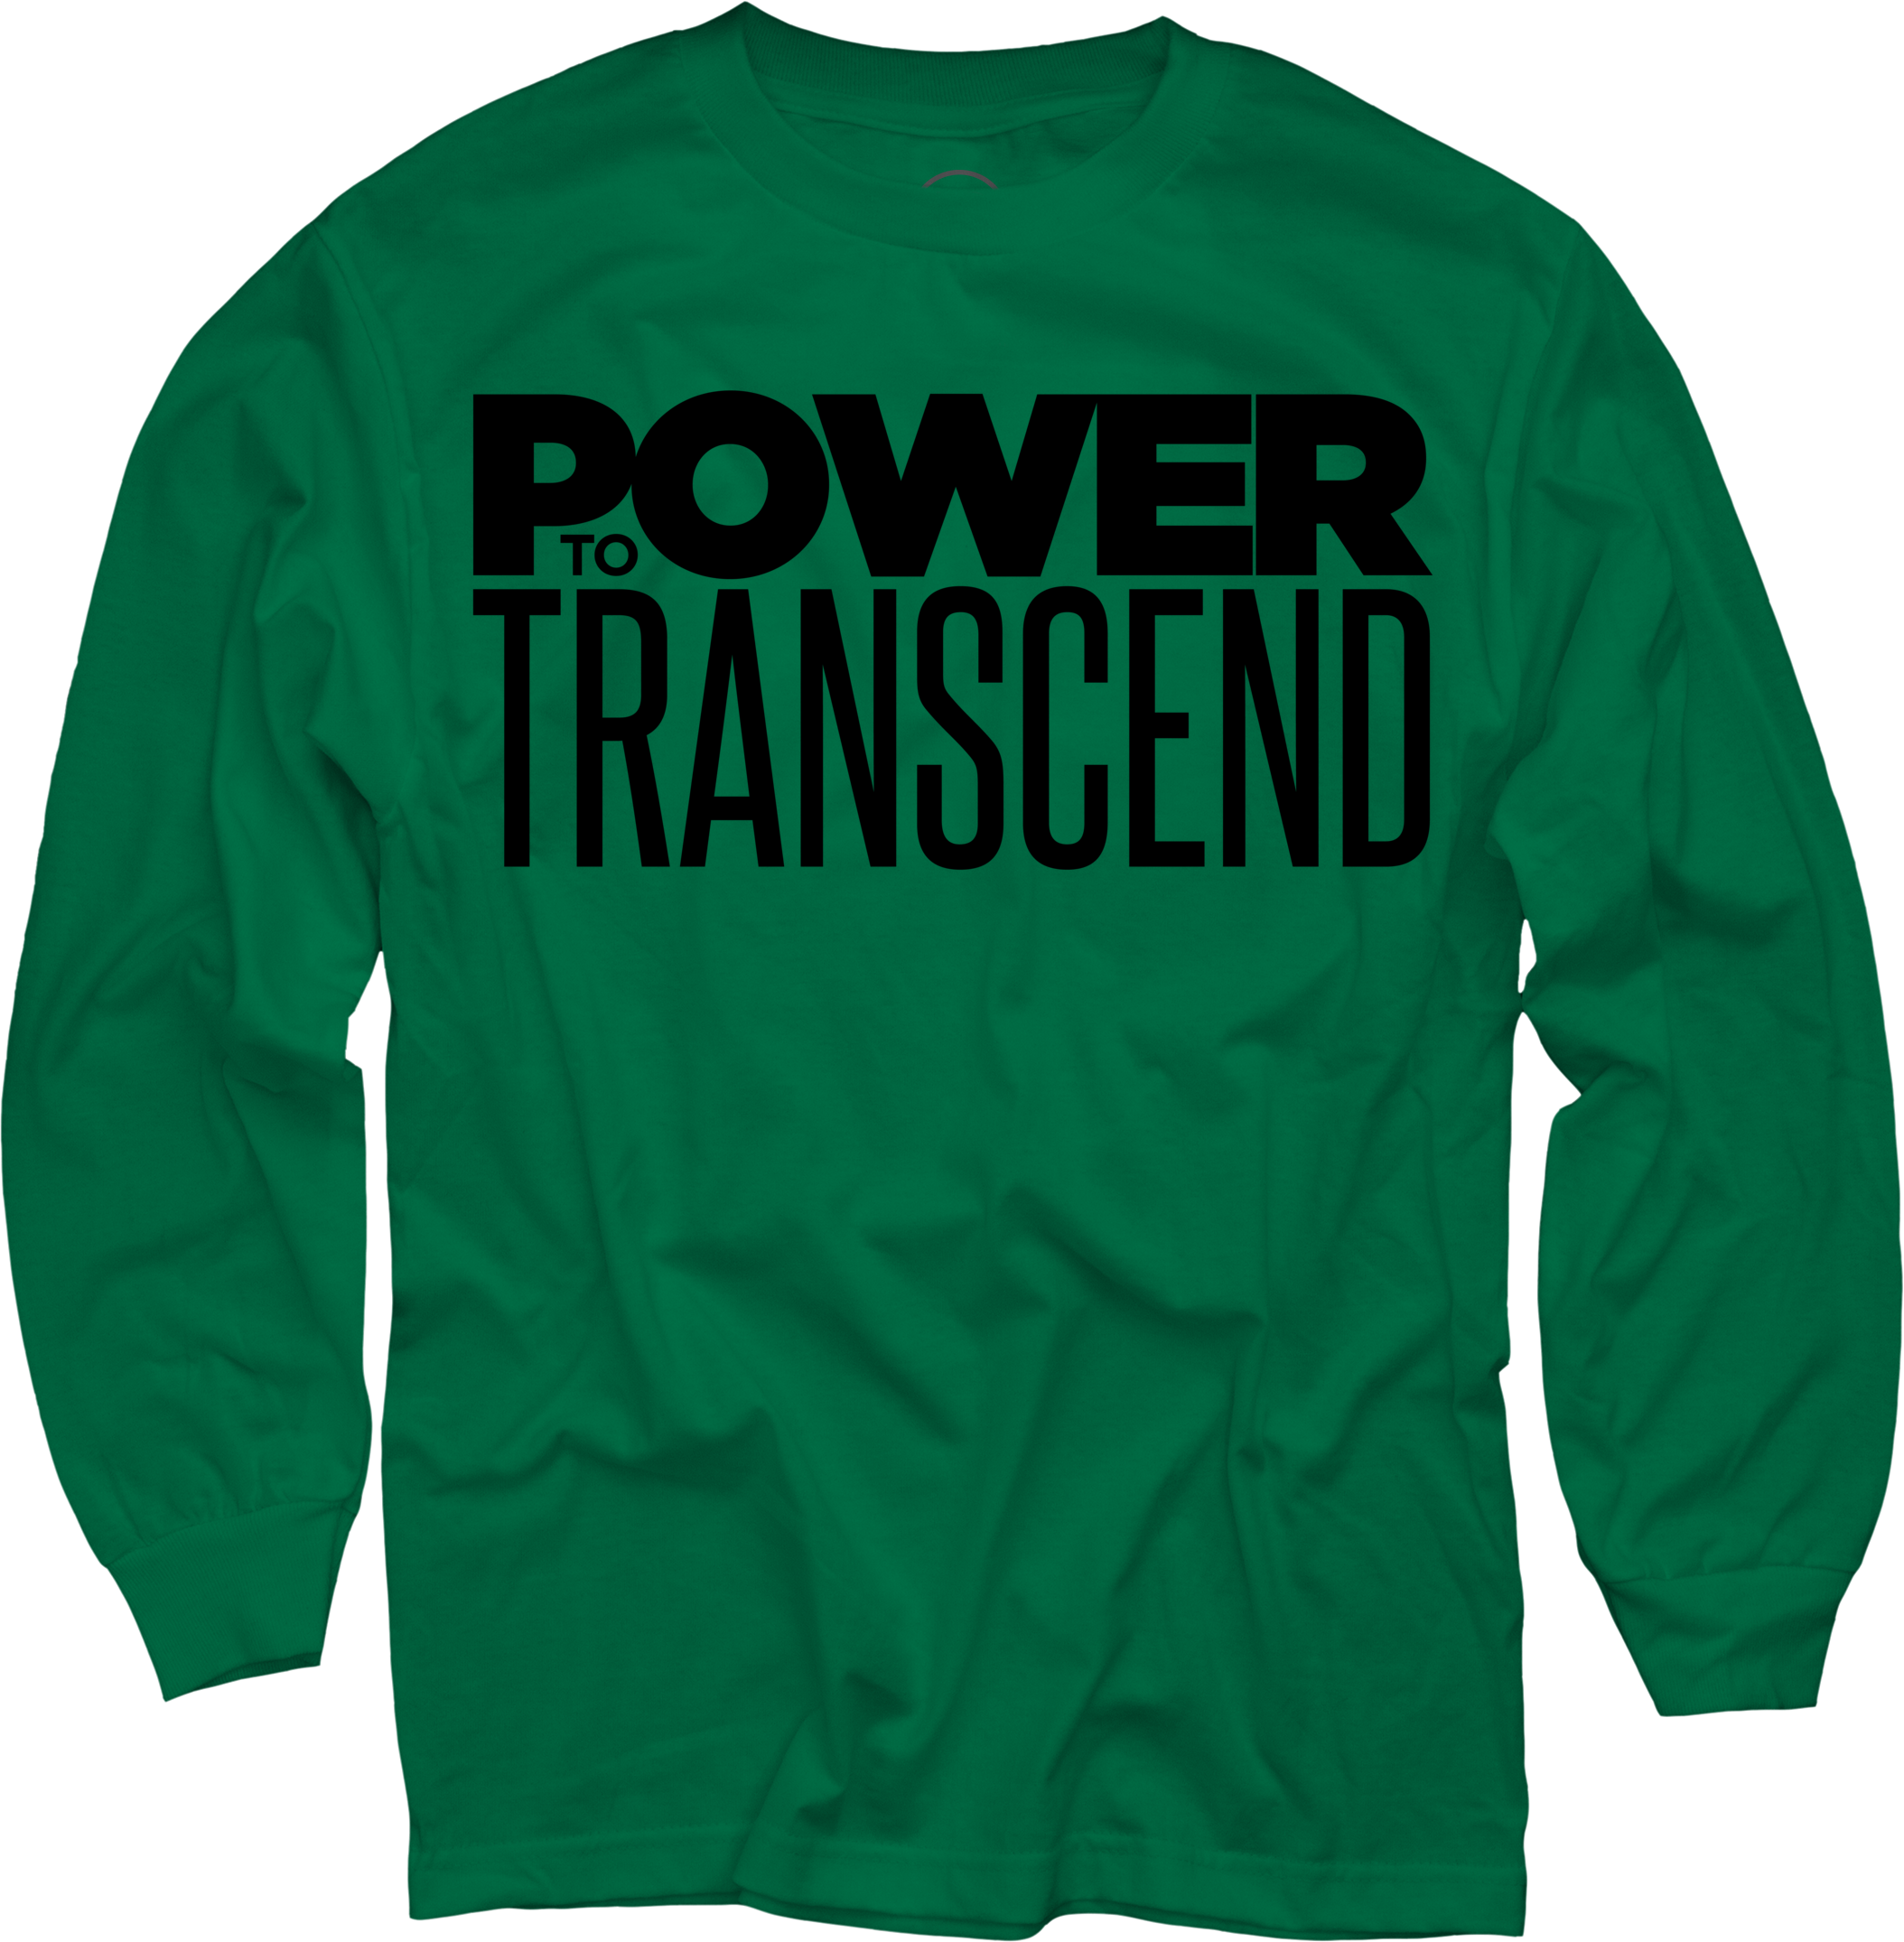 Power To Transcend on Green Long Sleeve